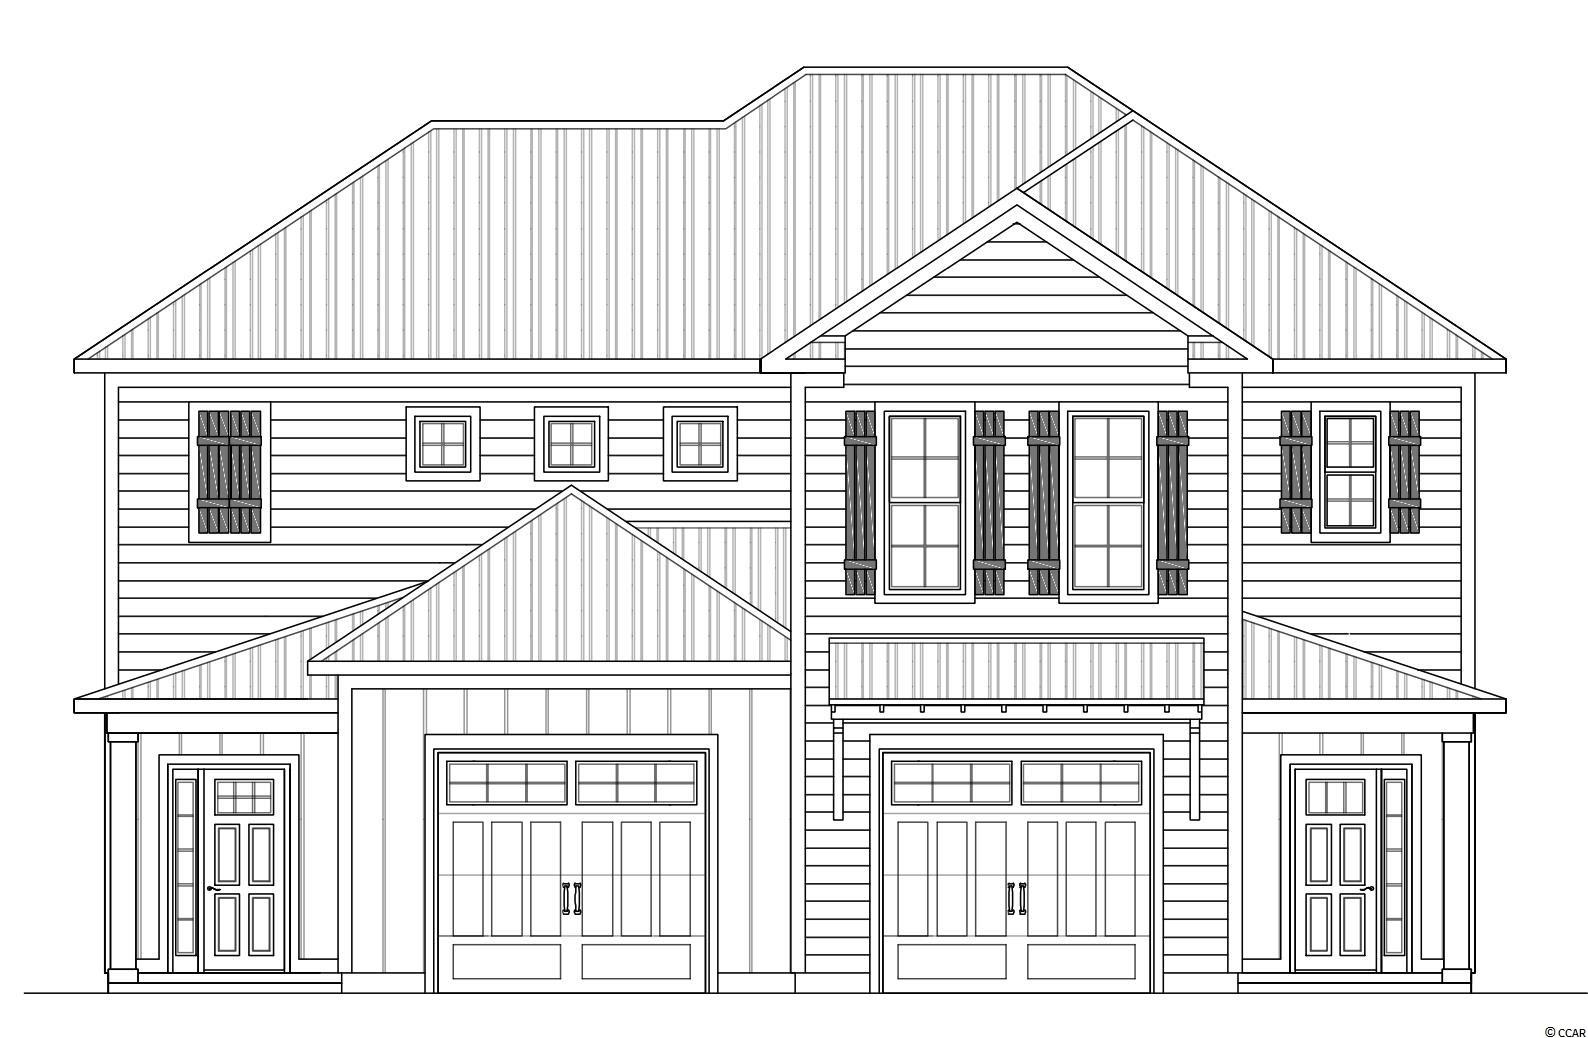 Beautiful paired residence community under the oaks in Pawleys Island.  This 10 resident community tucked away is the perfect place to call home, or to have as the vacation get away.  Hardie Plank siding, LVP flooring throughout, granite countertops in the kitchen, custom cabinets, upgrades galore.  Call today!!